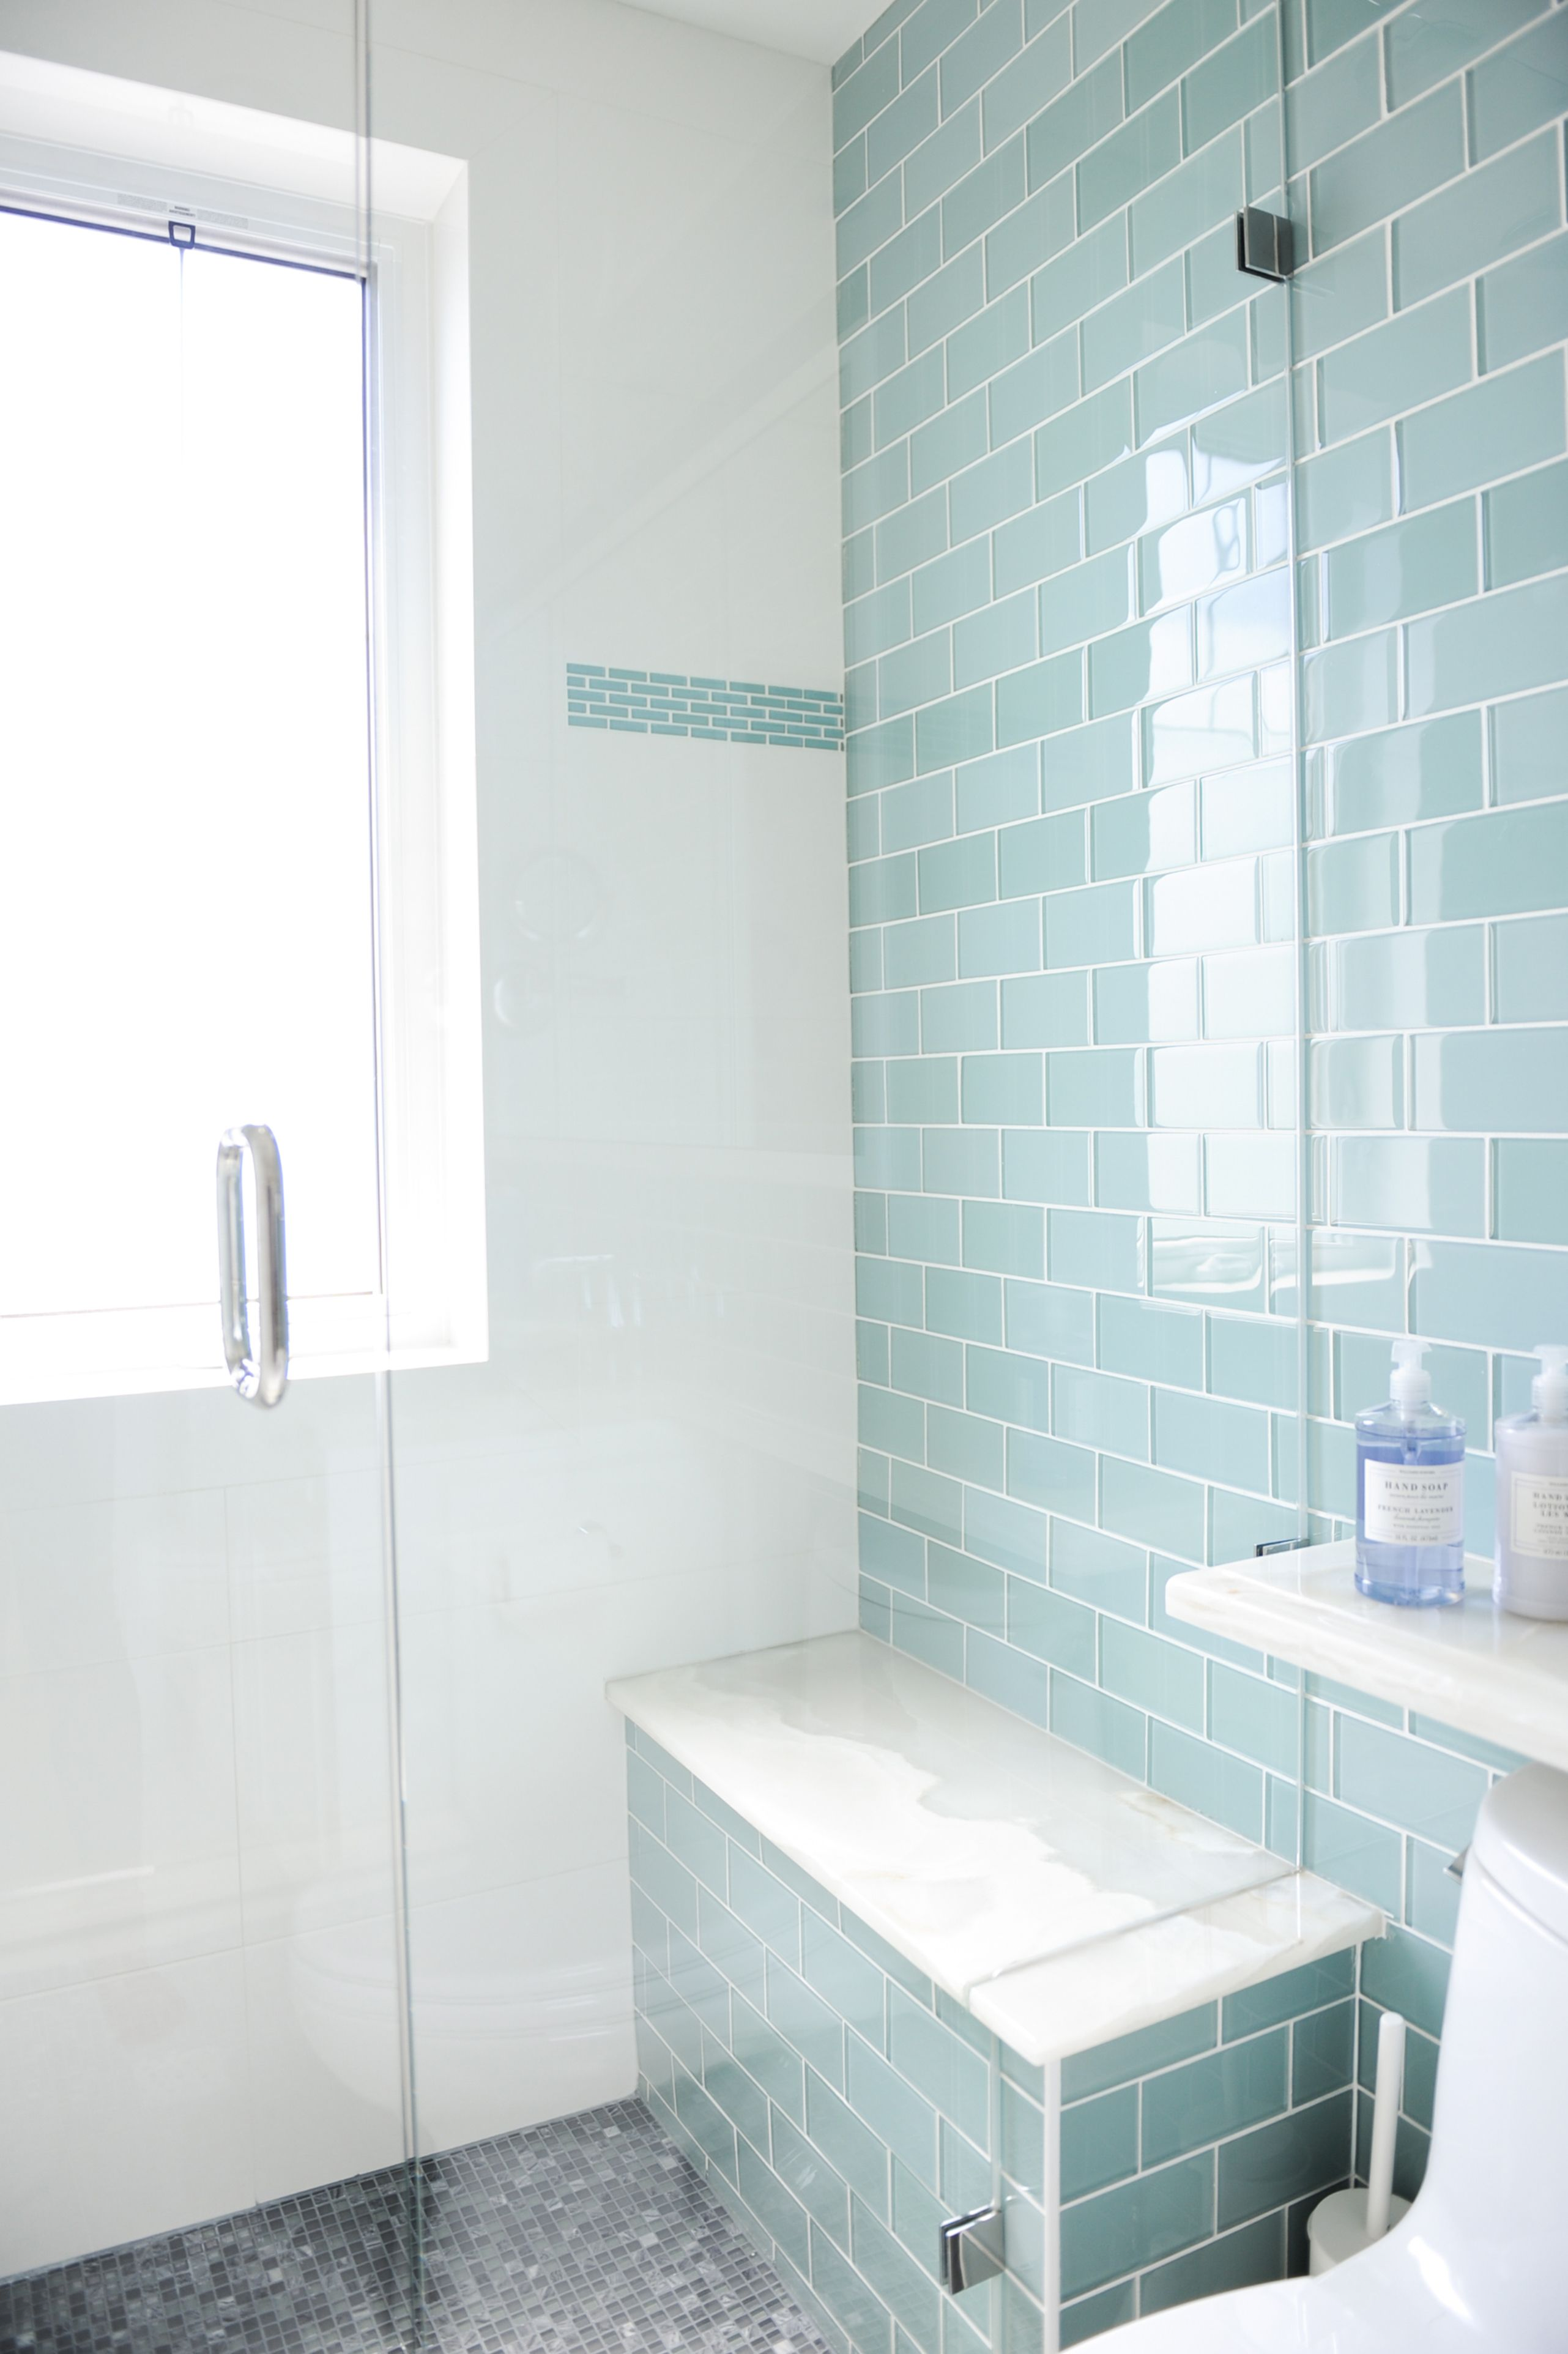 Bathroom designed by enviable designs an accent wall in turquoise